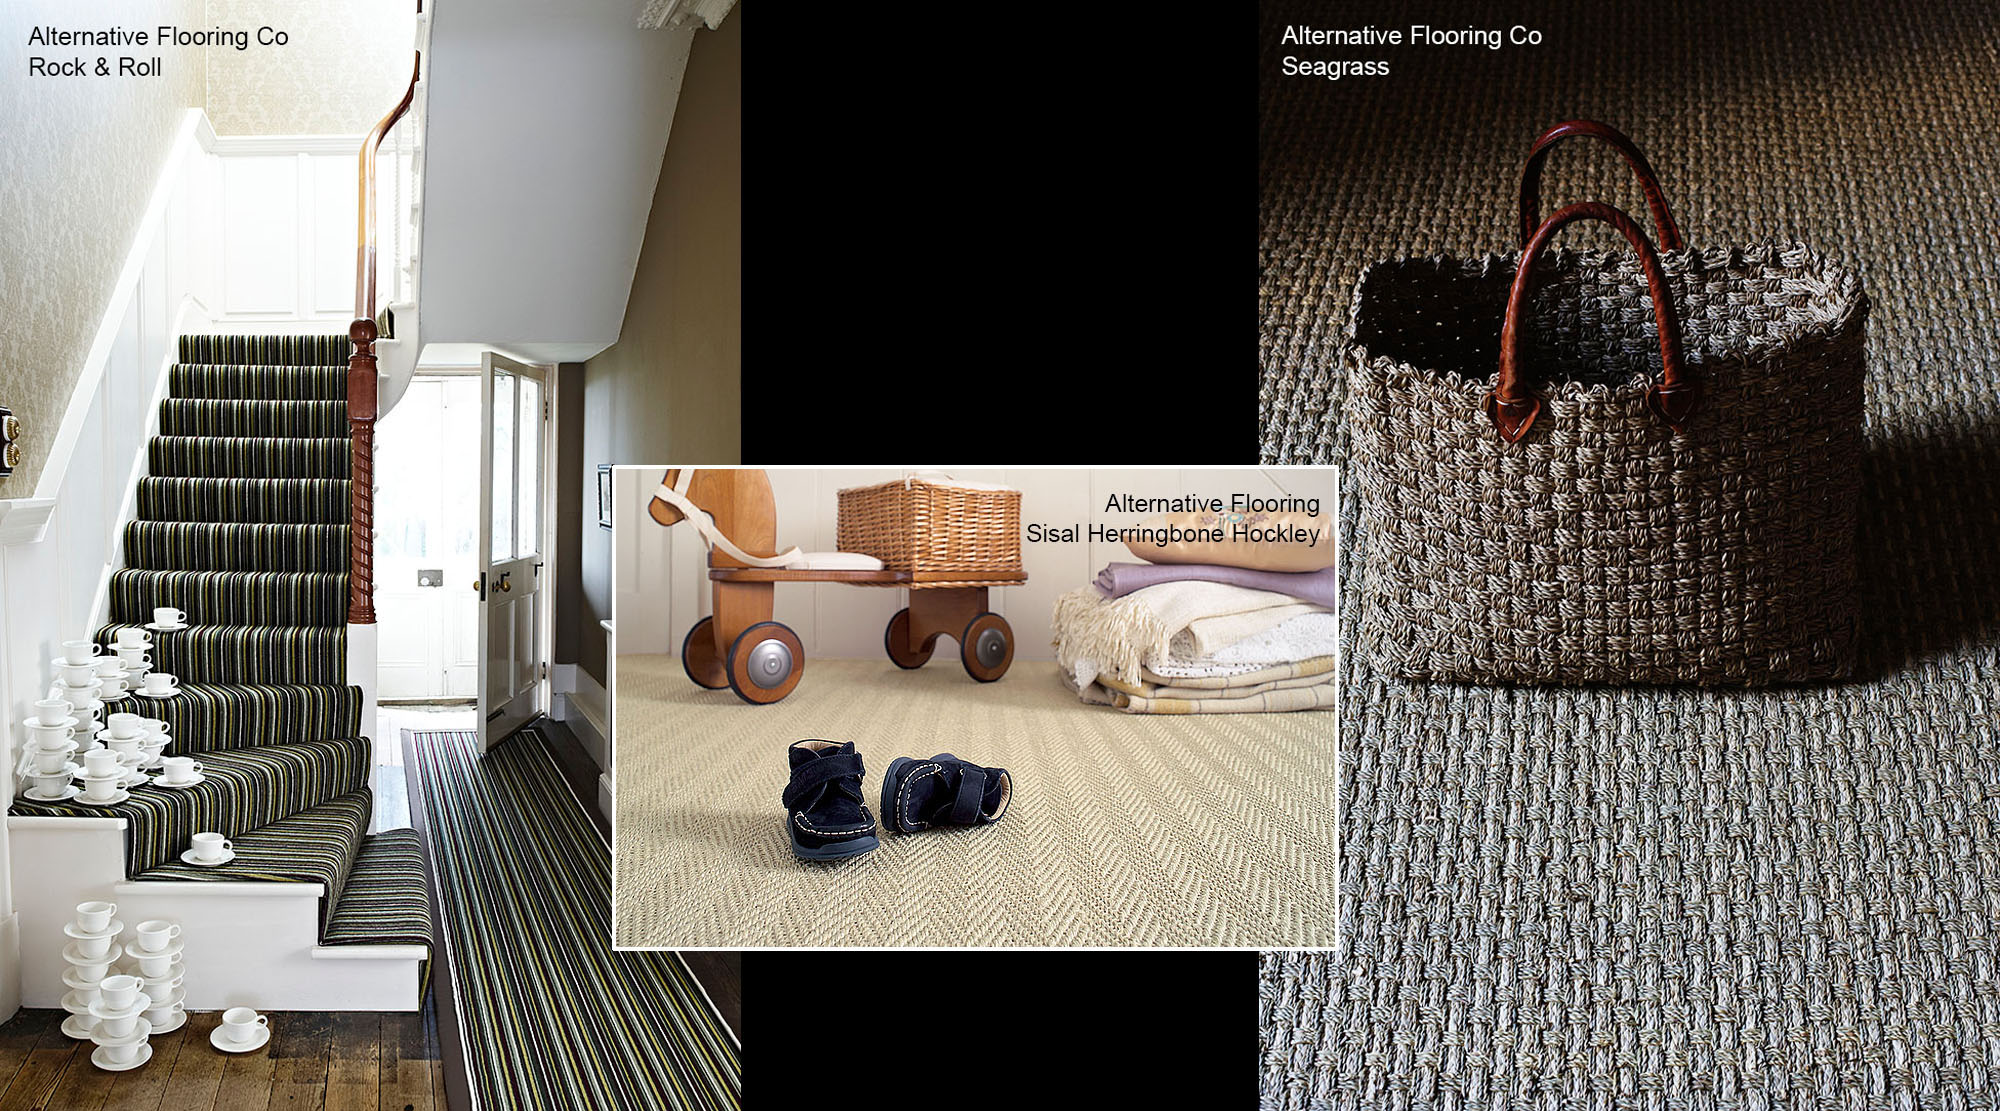 Alternative Flooring sisal and seagrass